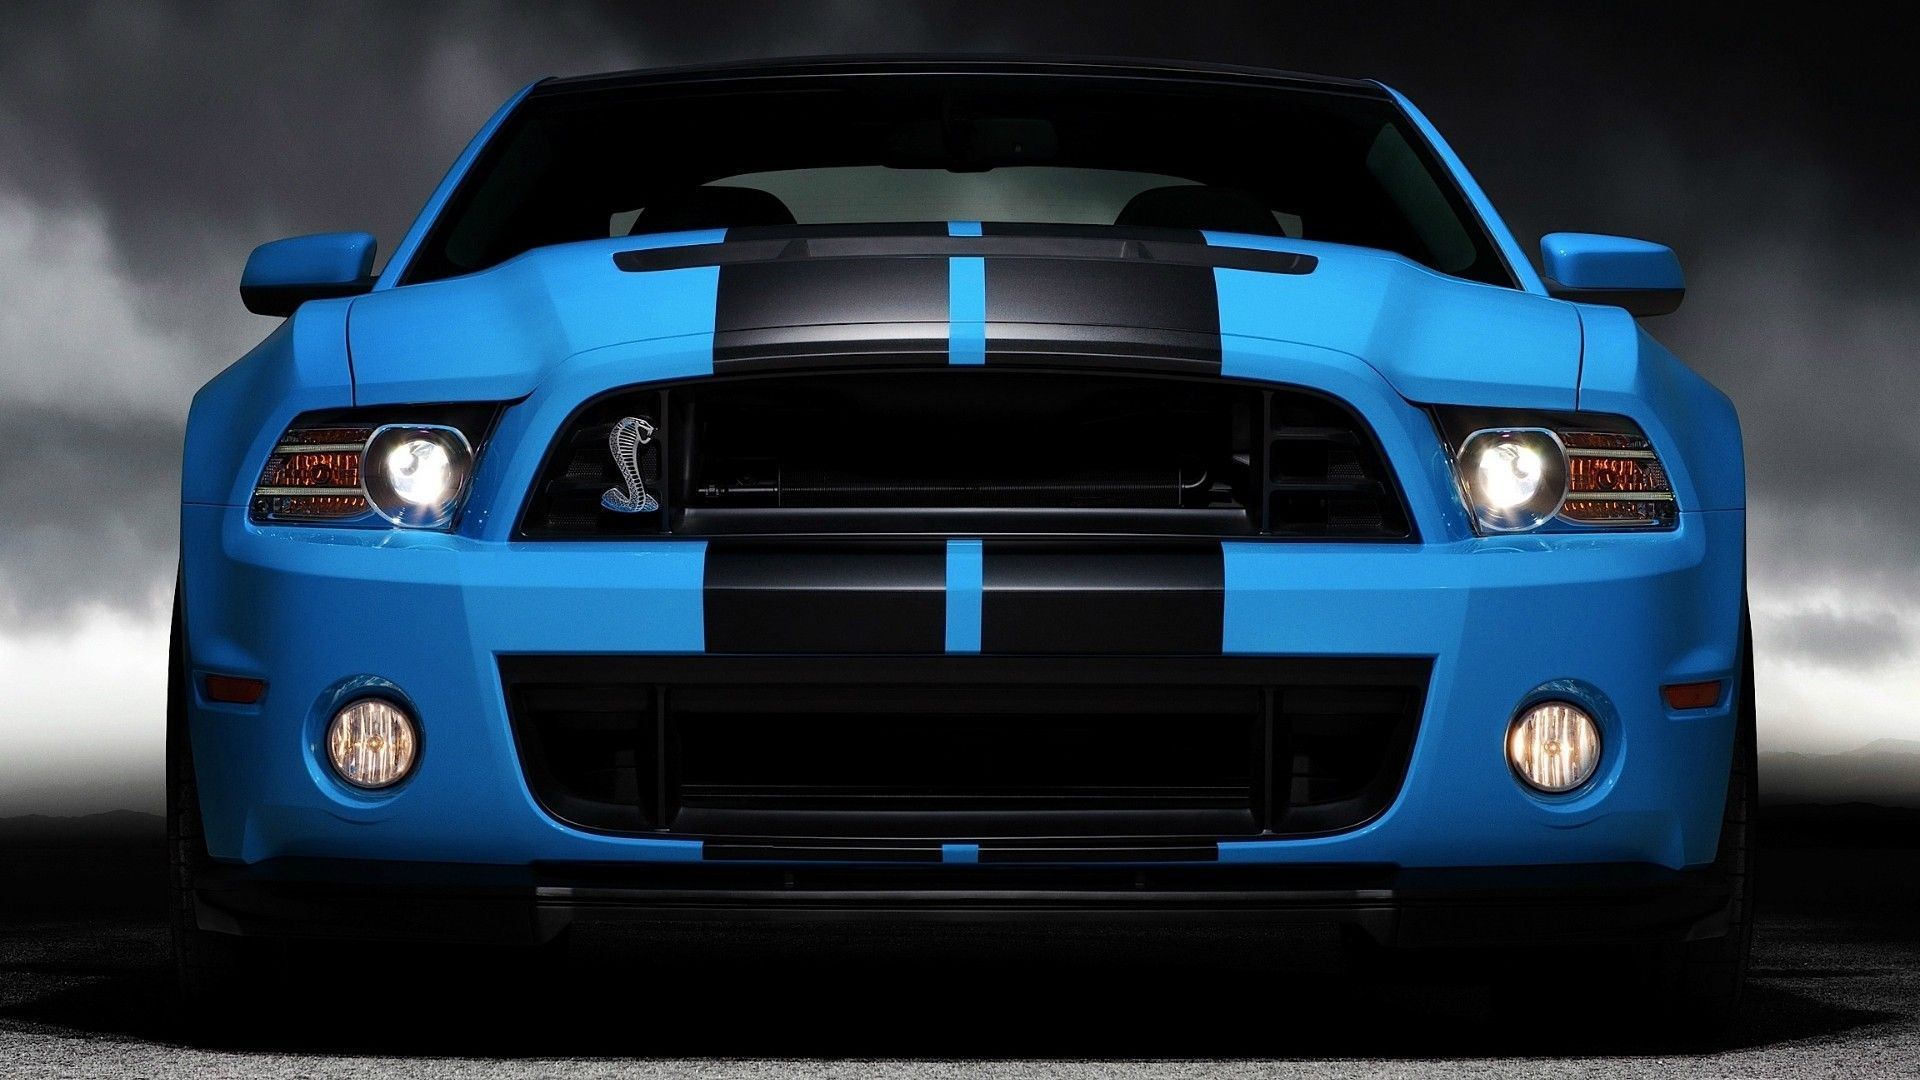 Ford Mustang Blue Laptop Wallpapers Top Free Ford Mustang Blue